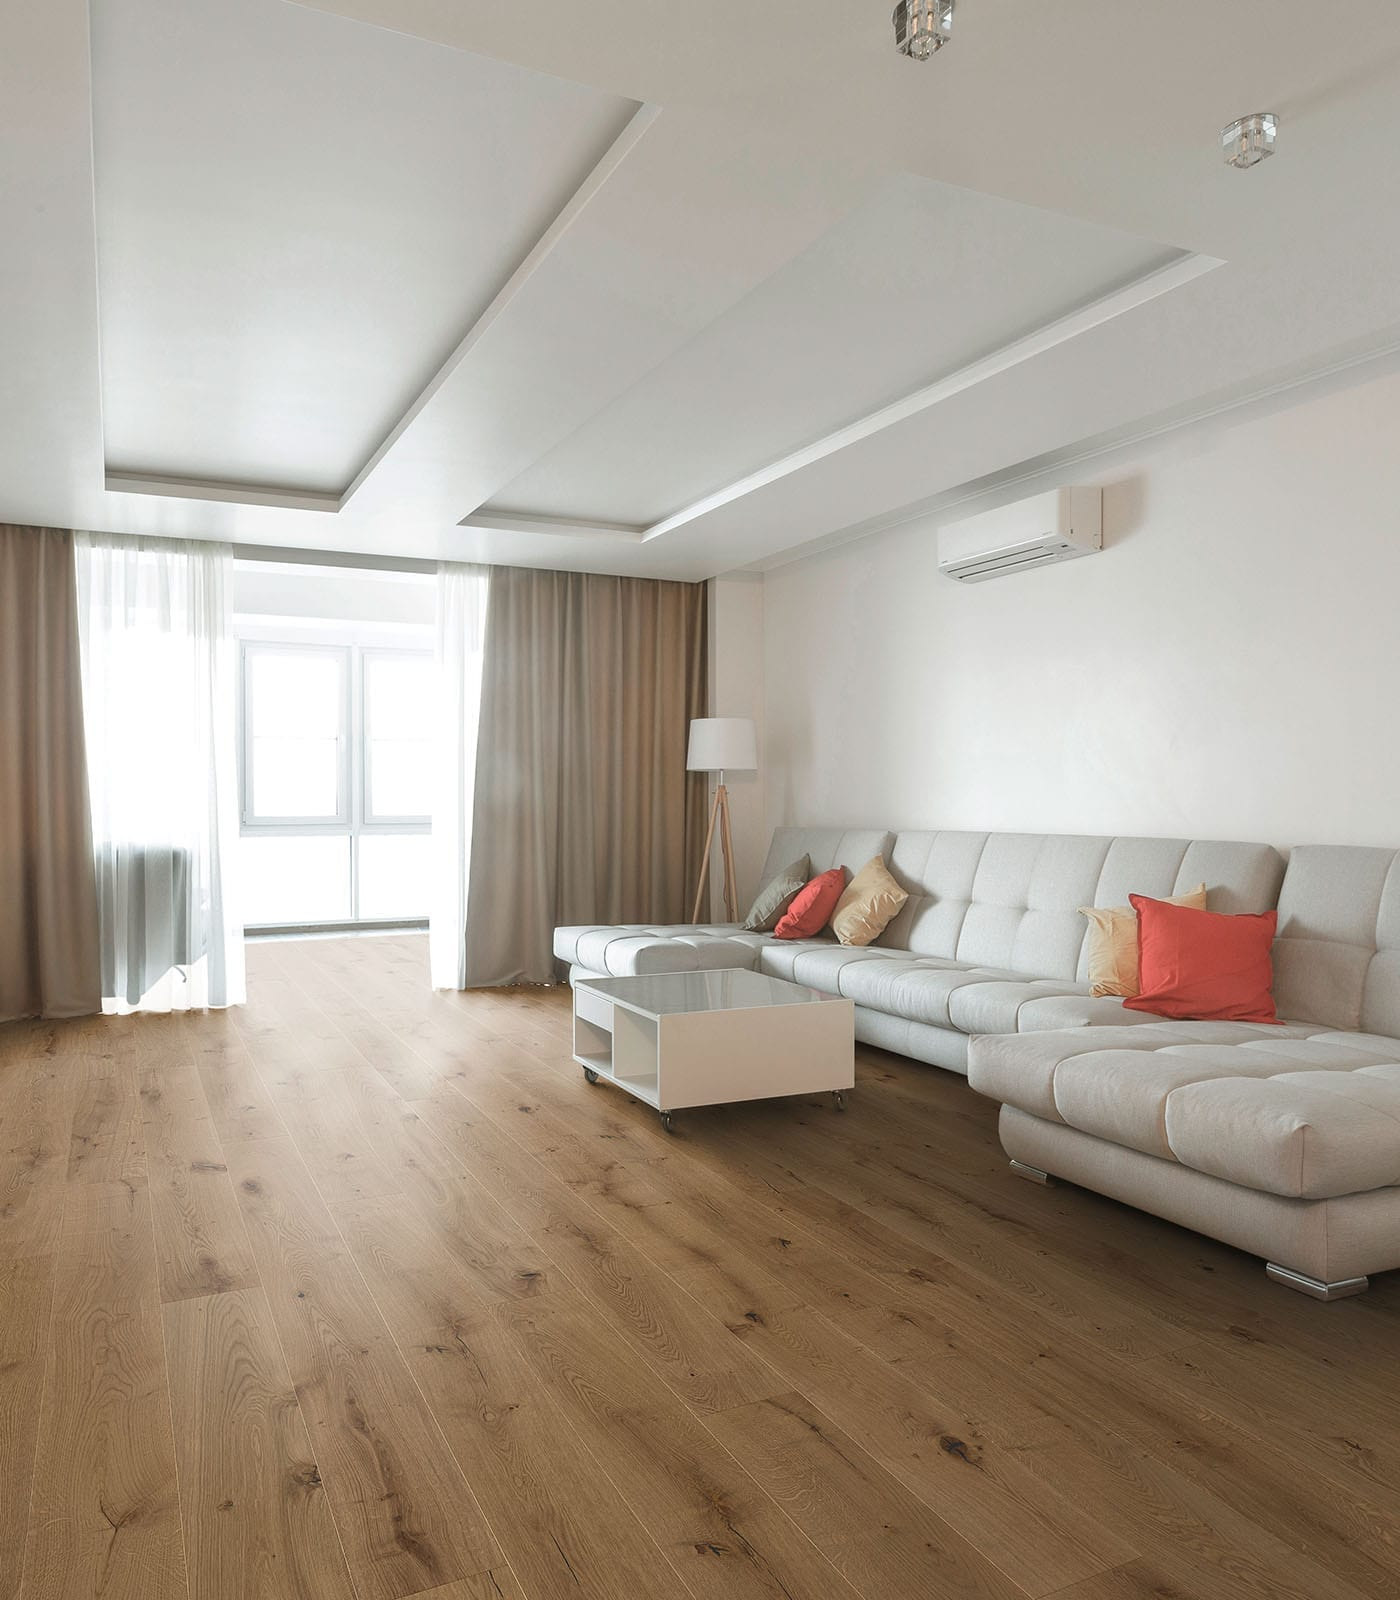 Cancun-Engineered European Oak Floors